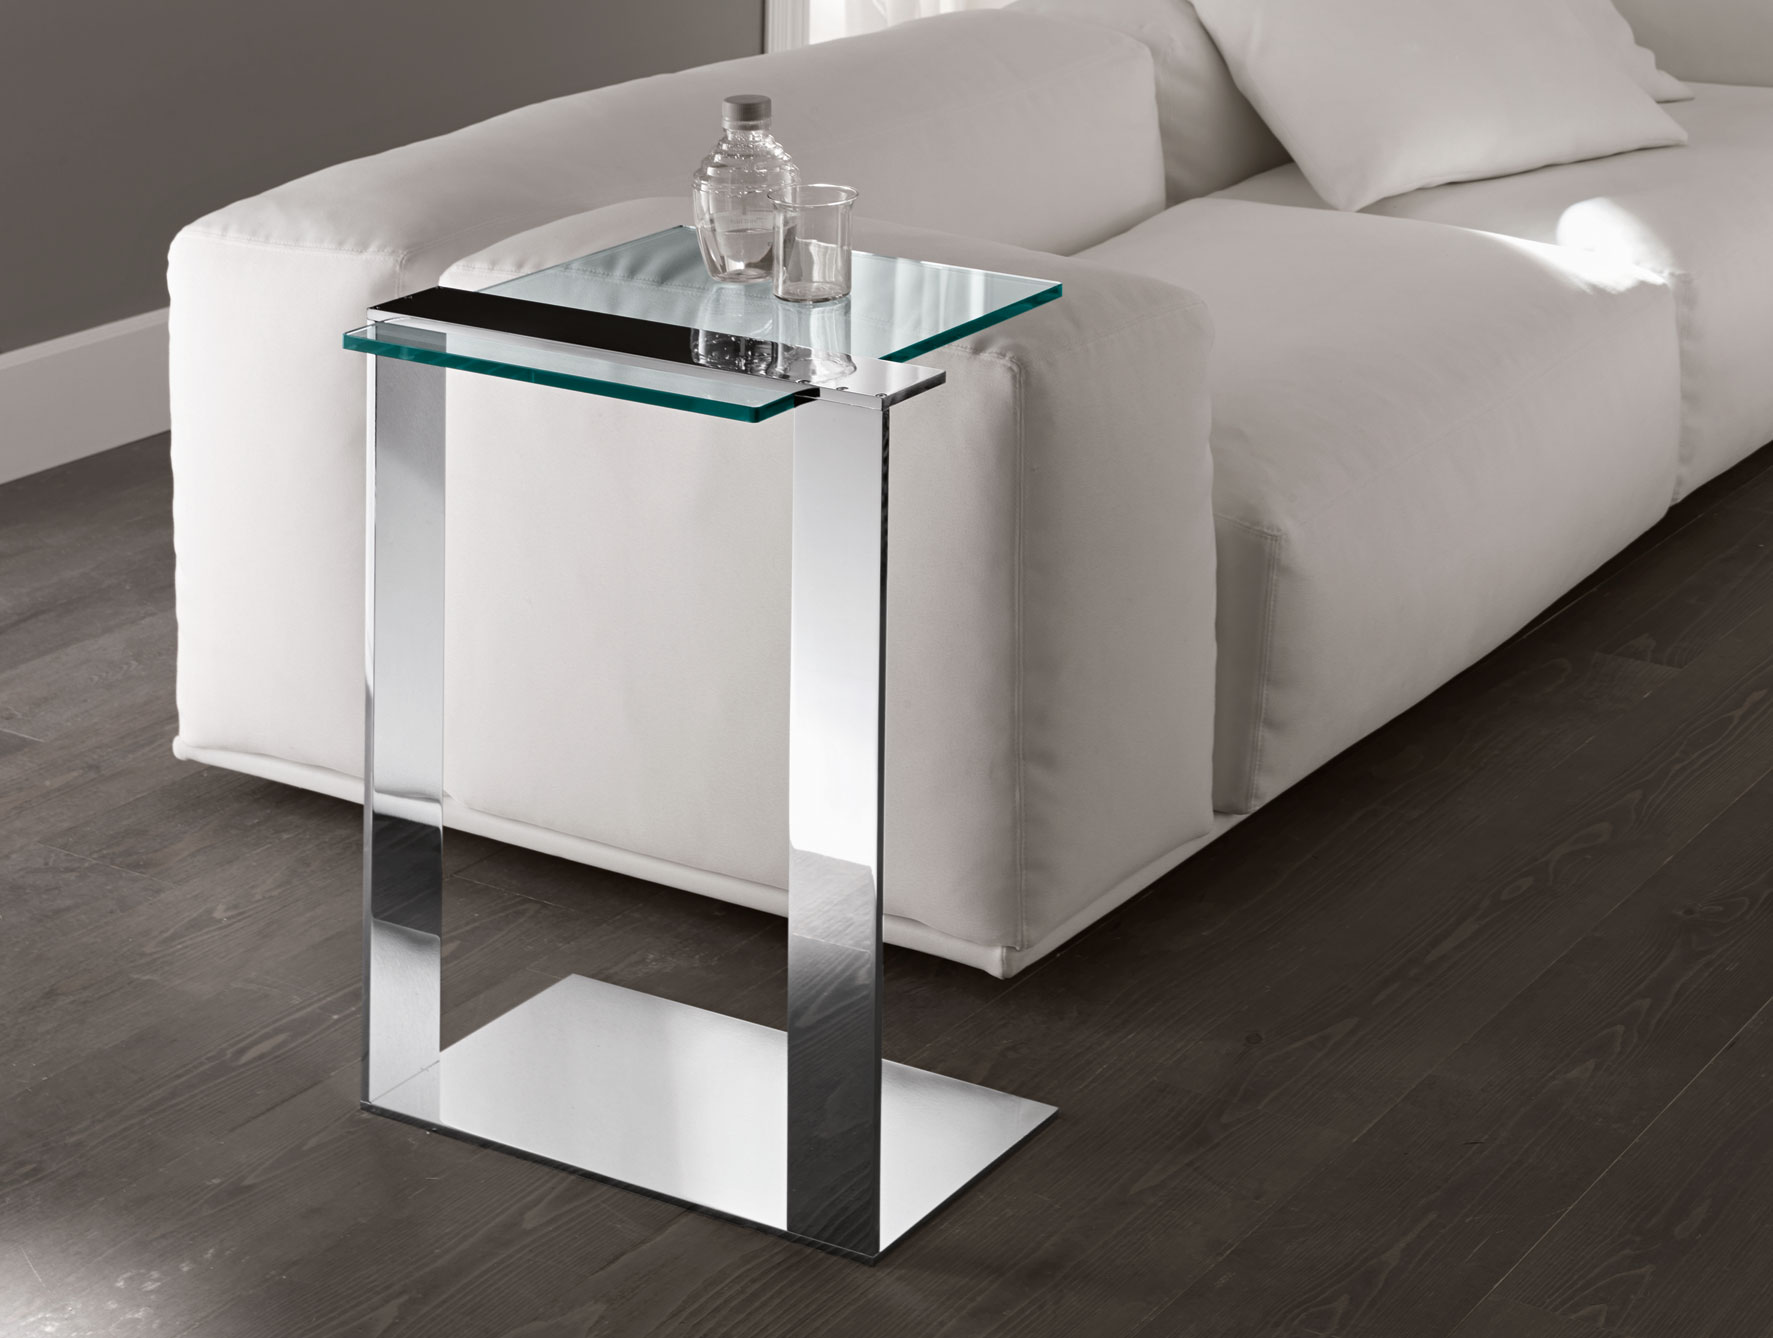 designer end tables galaxyinsider nella vetrina tonelli joliet contemporary italian chrome table pertaining ideas glass cream coffee with drawers office chair stanley caroline